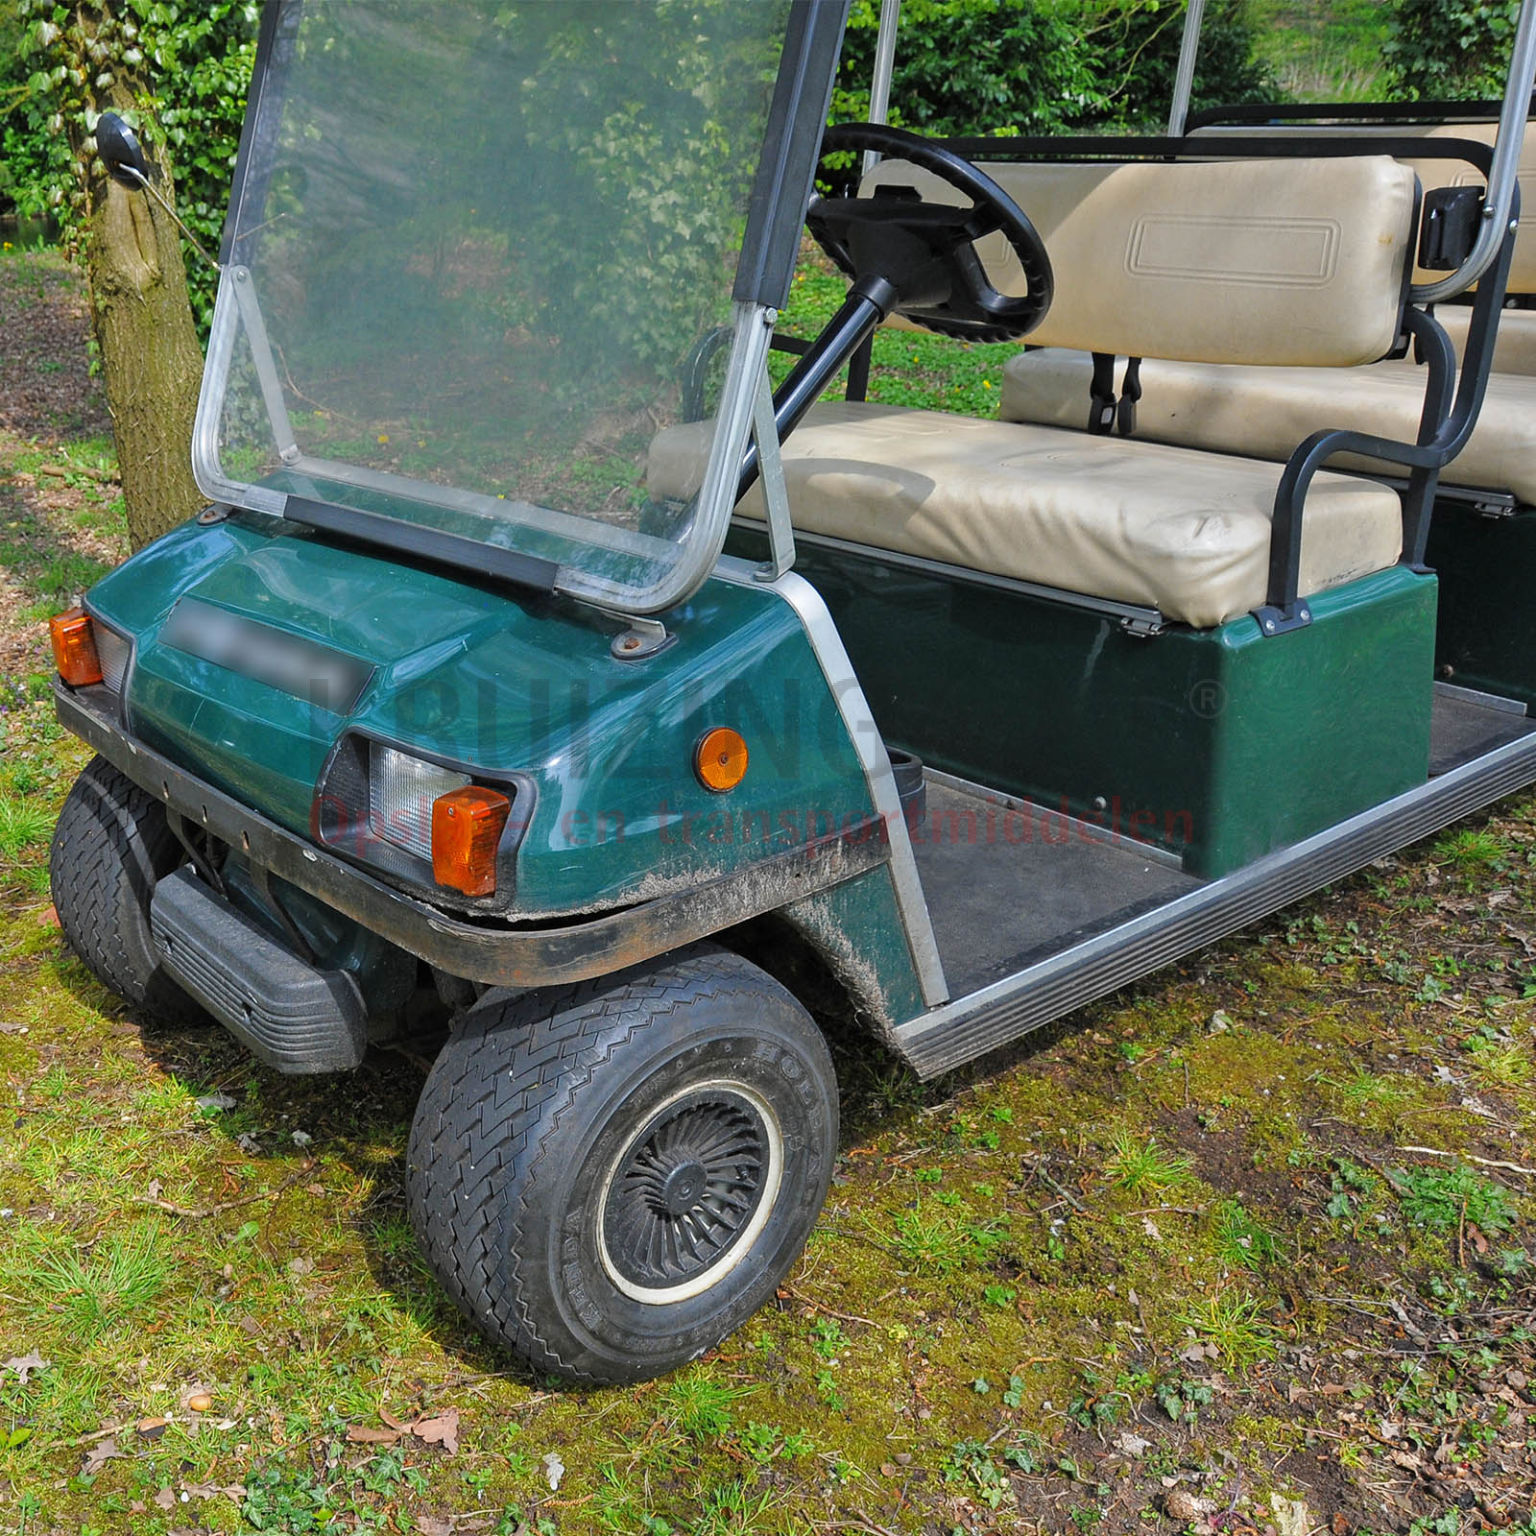 golf cart club car villager pour 8 personnes lectrique occasion. Black Bedroom Furniture Sets. Home Design Ideas